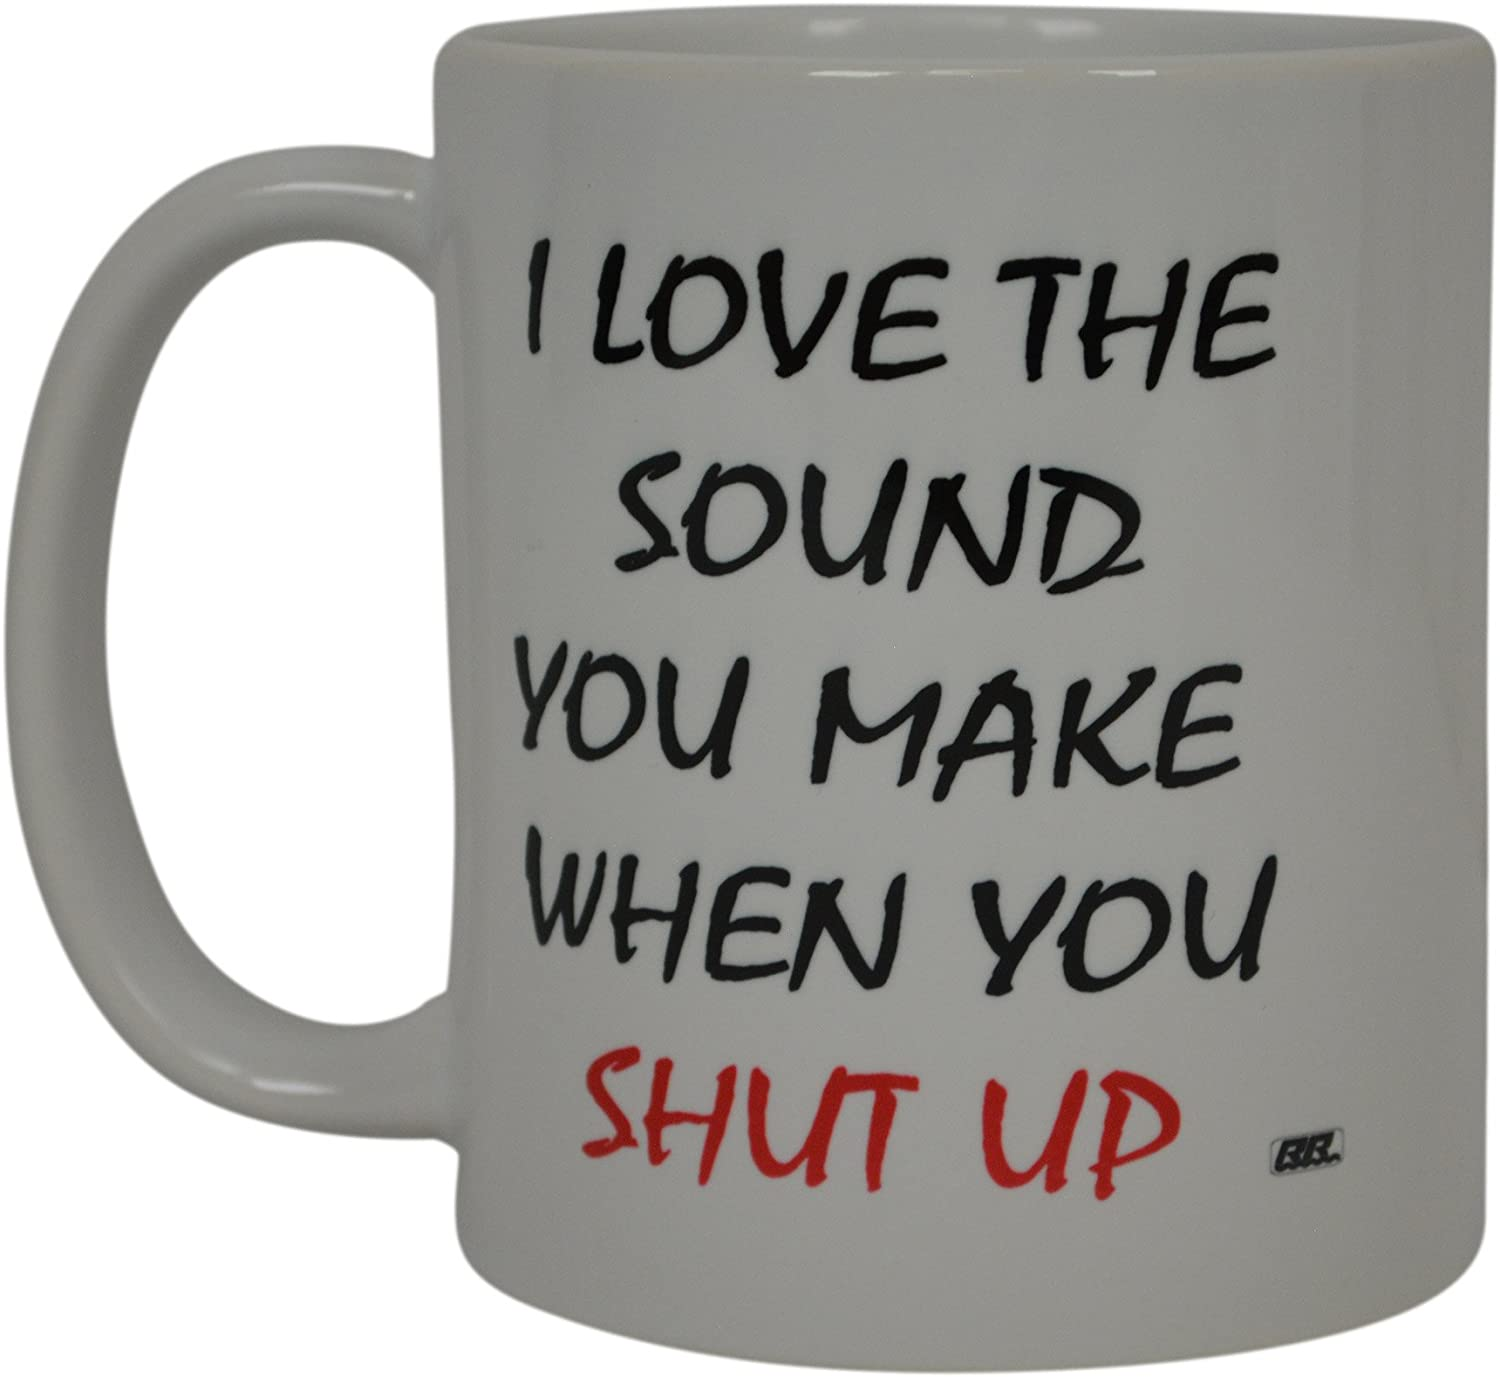 Best Funny Coffee Mug I Love The Sound You Make when You Shut Up Sarcastic Novelty Cup Joke Great Gag Gift Idea For Men Women Office Work Adult Humor Employee Boss Coworkers